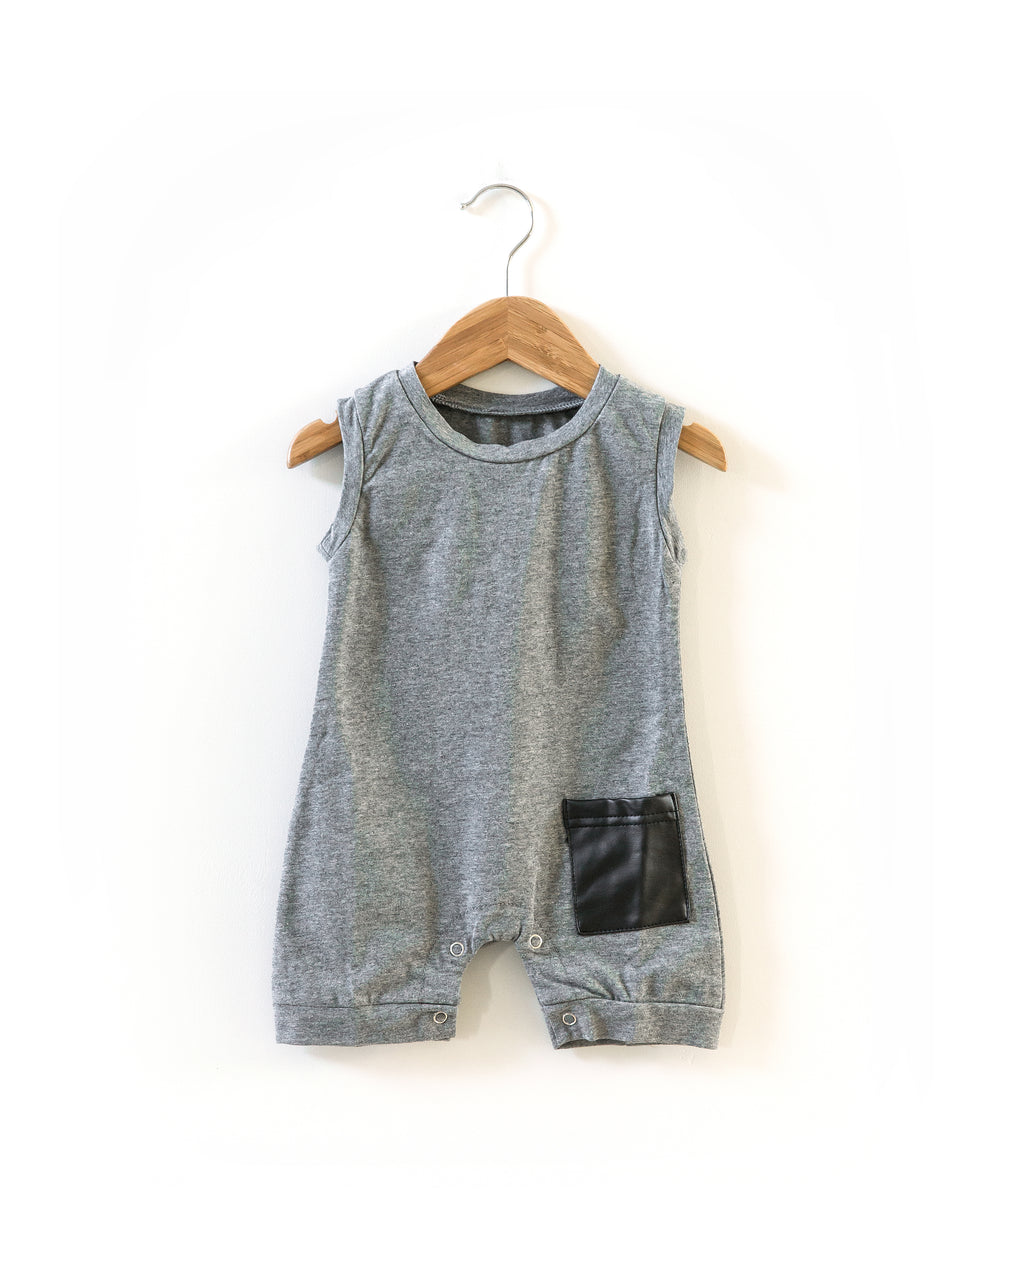 Dude Romper in Gray - Reverie Threads